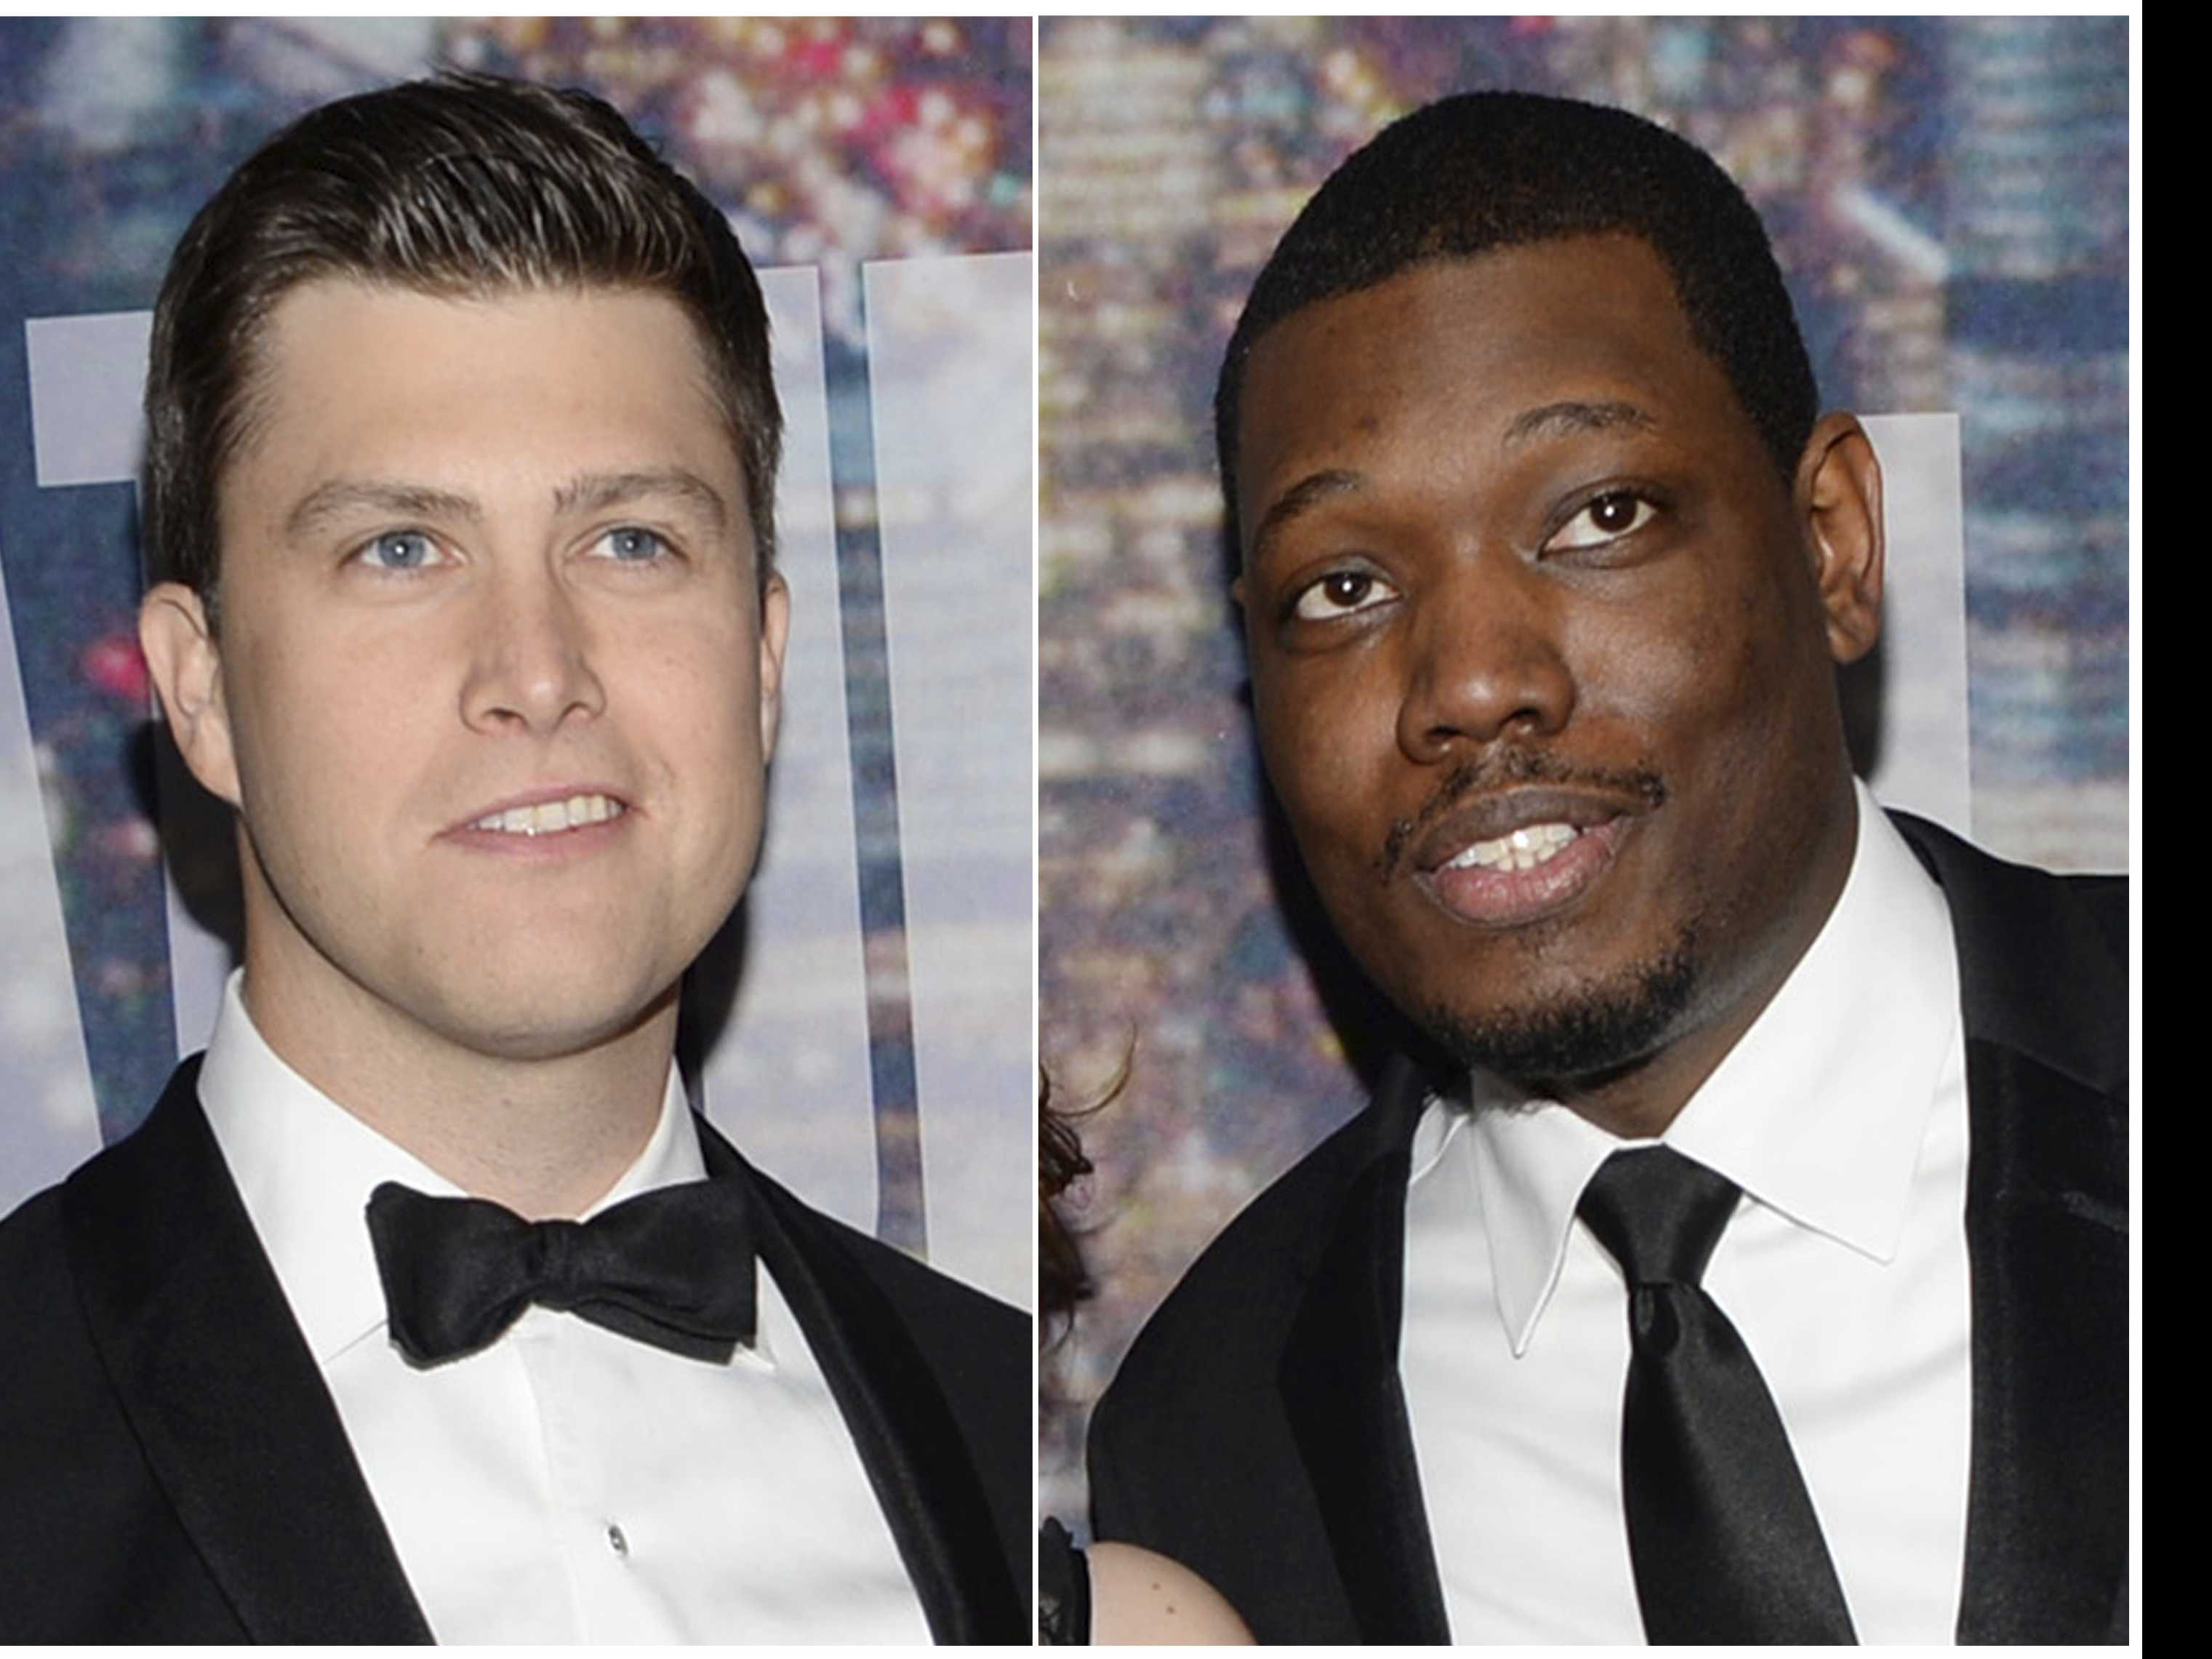 Michael Che, Colin Jost of 'SNL' to Host Emmy Awards